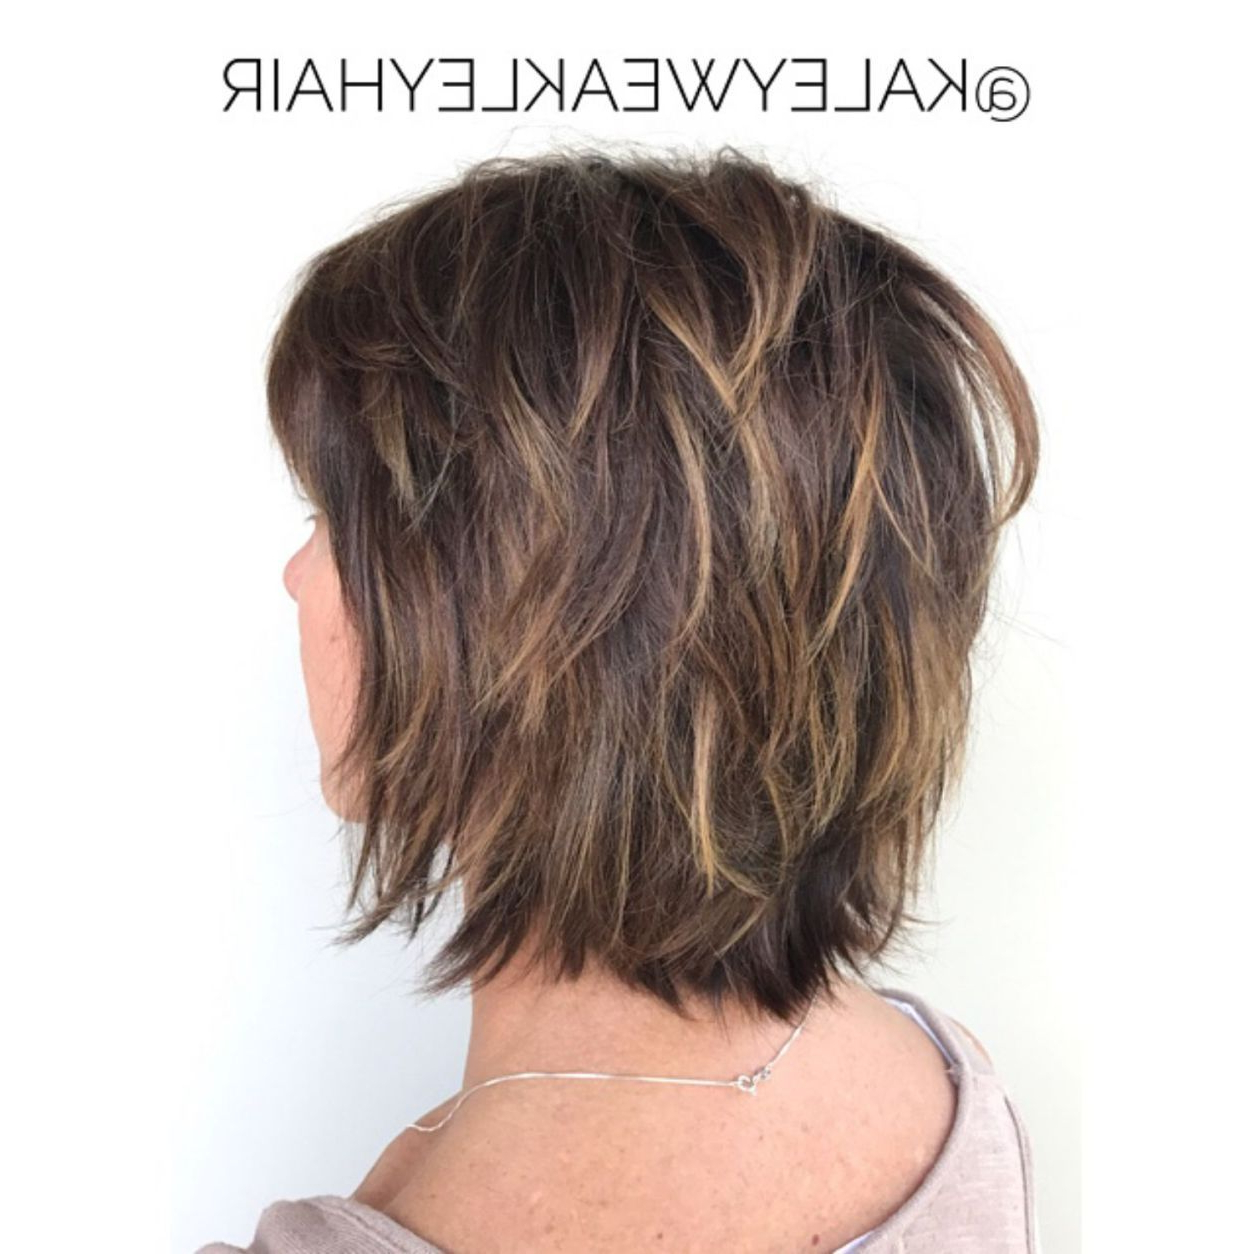 60 Short Shag Hairstyles That You Simply Can't Miss | Short With Regard To Short Highlighted Shaggy Haircuts (Gallery 3 of 20)